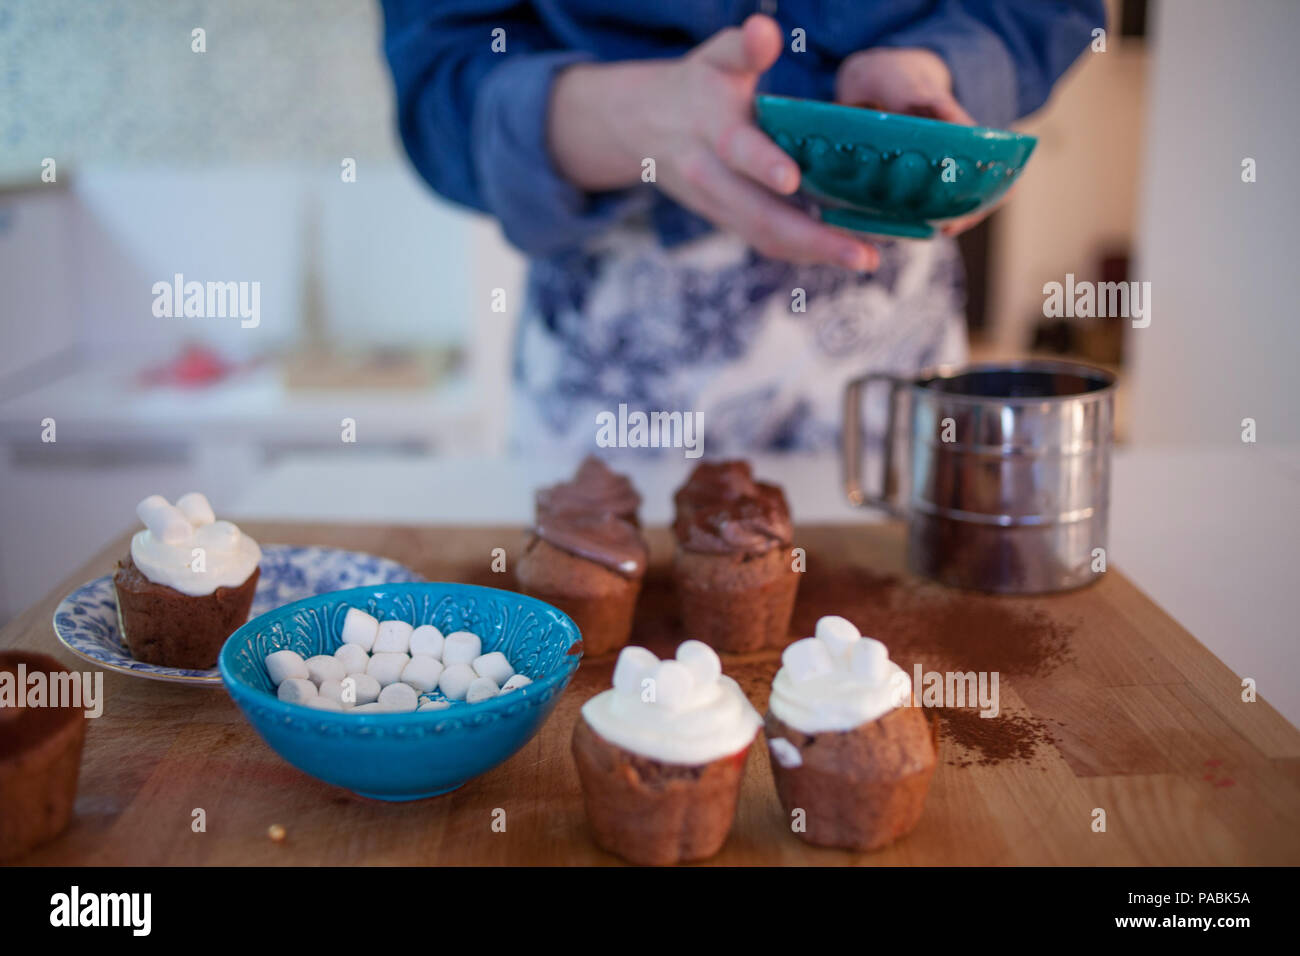 celebration cupcakes, chocolate muffins on the table - Stock Image